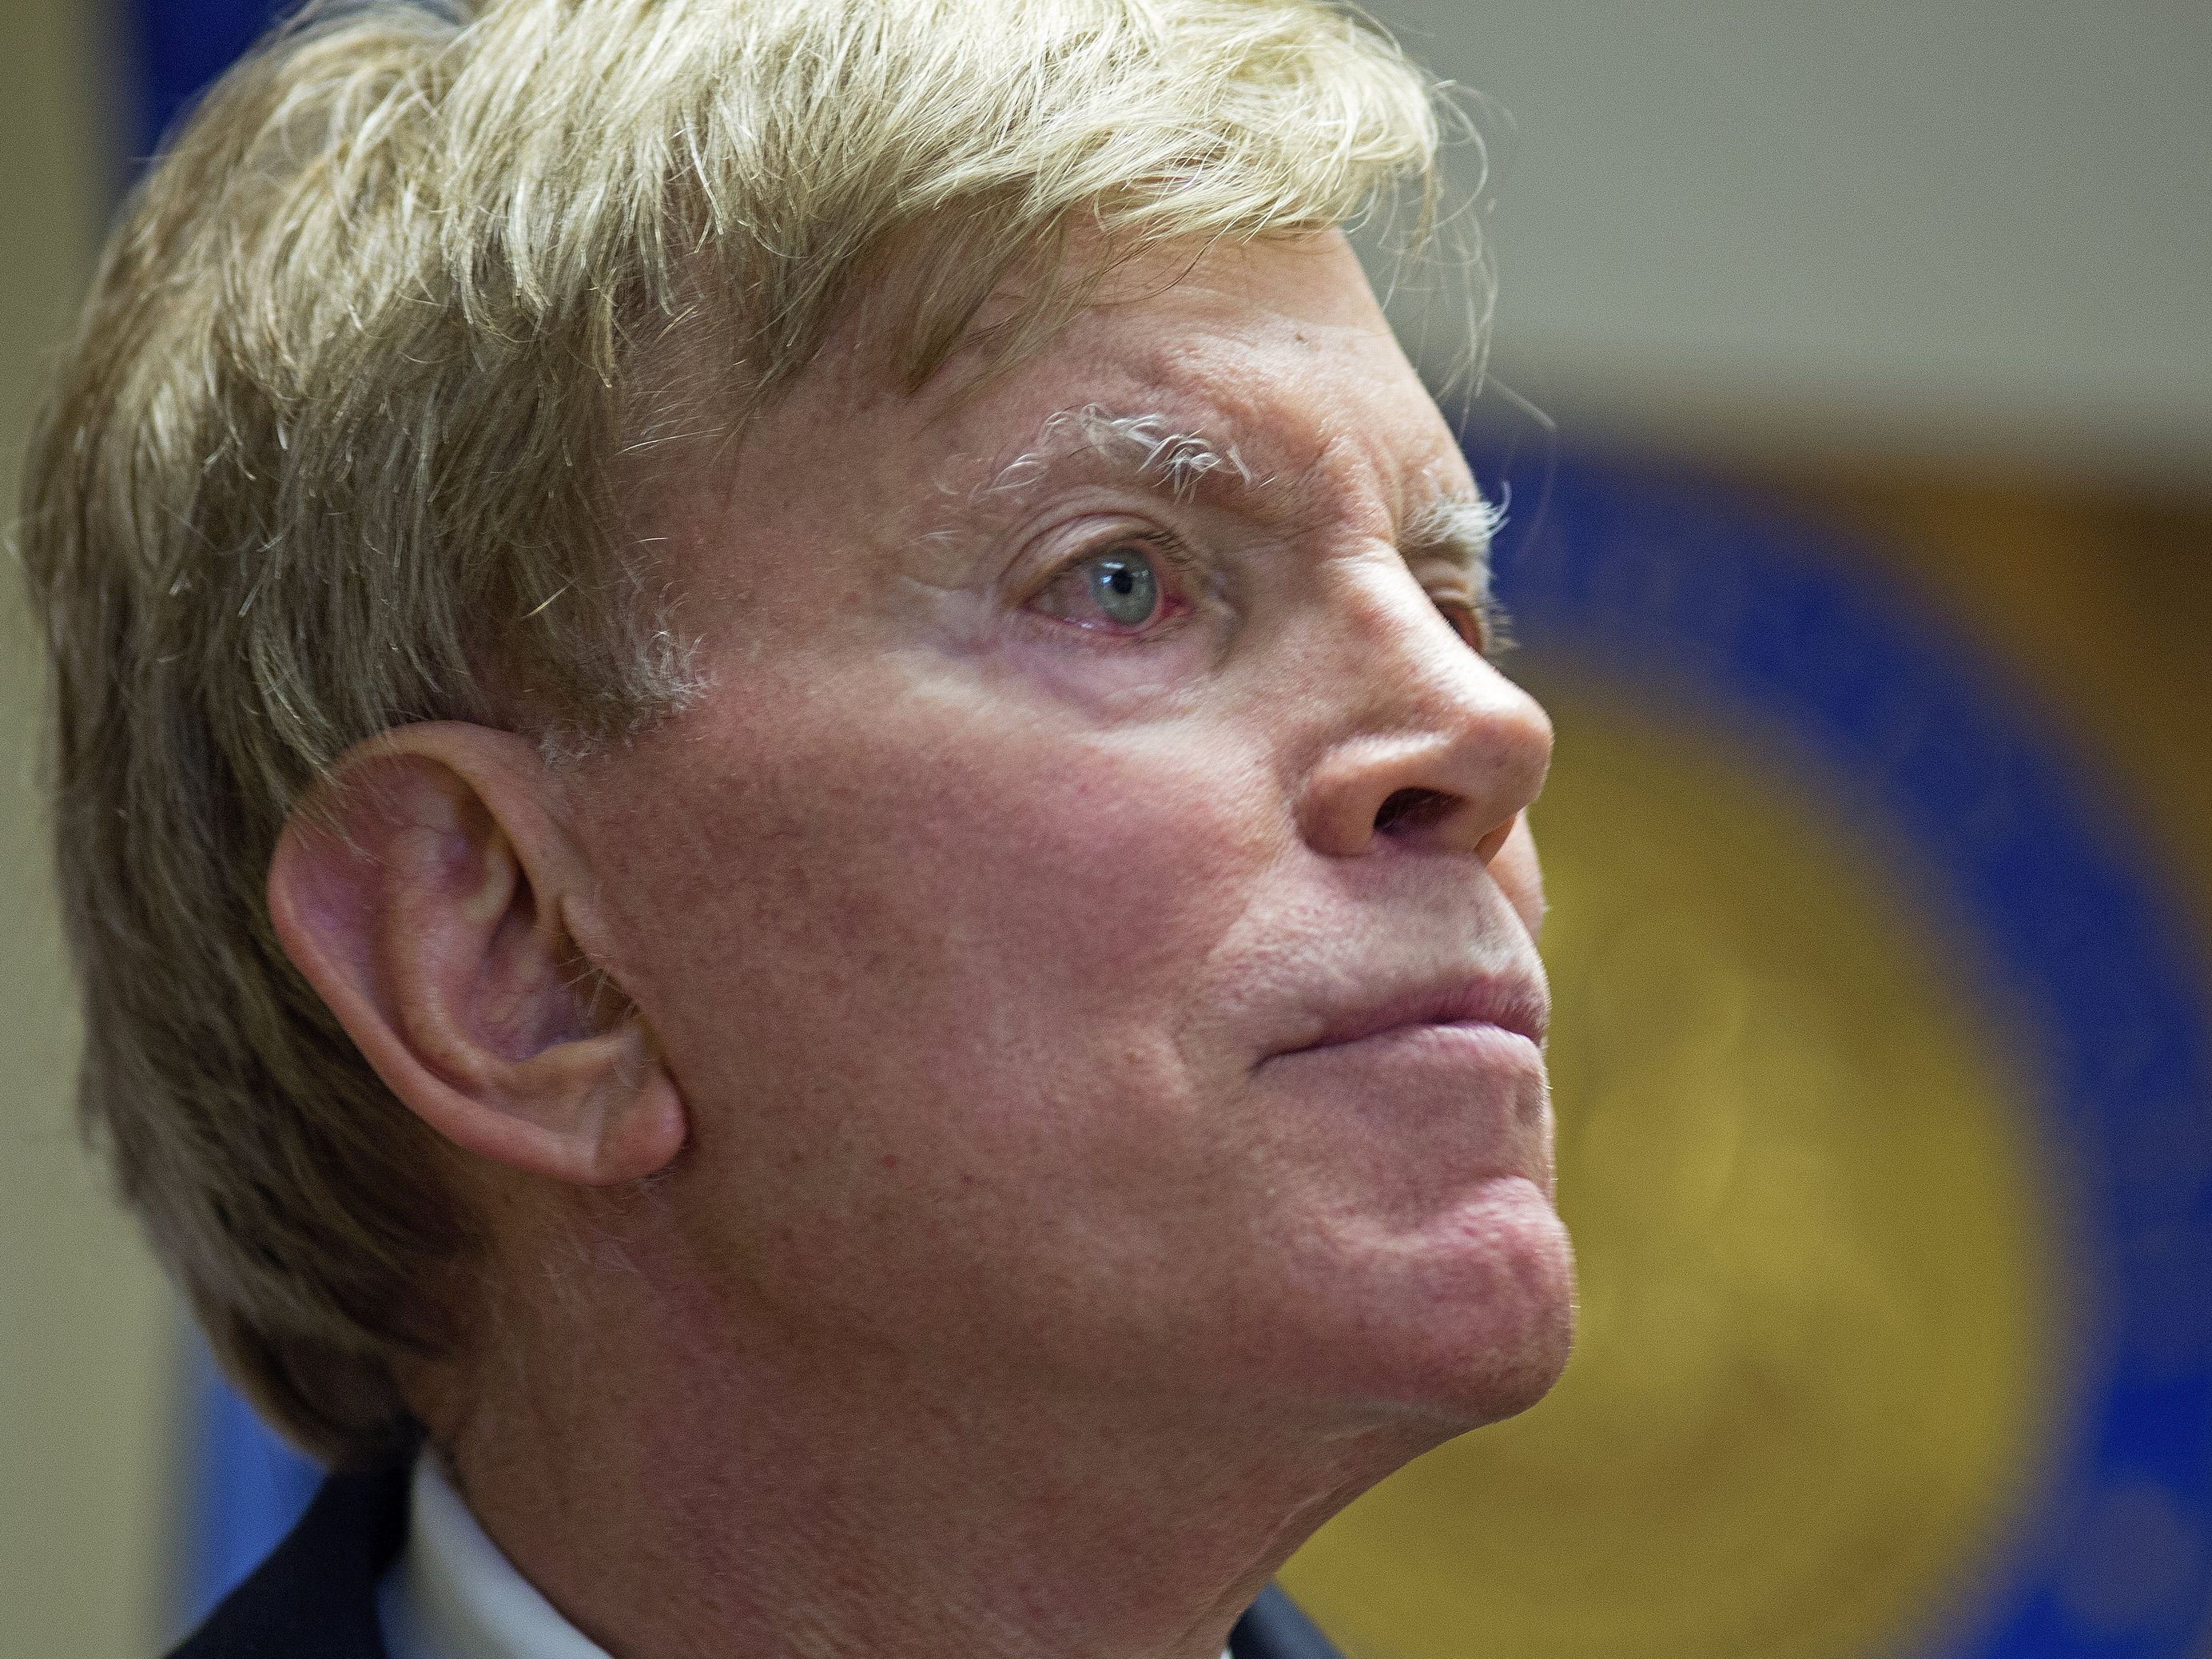 David Duke agrees to pay $5K to man hurt at Virginia rally